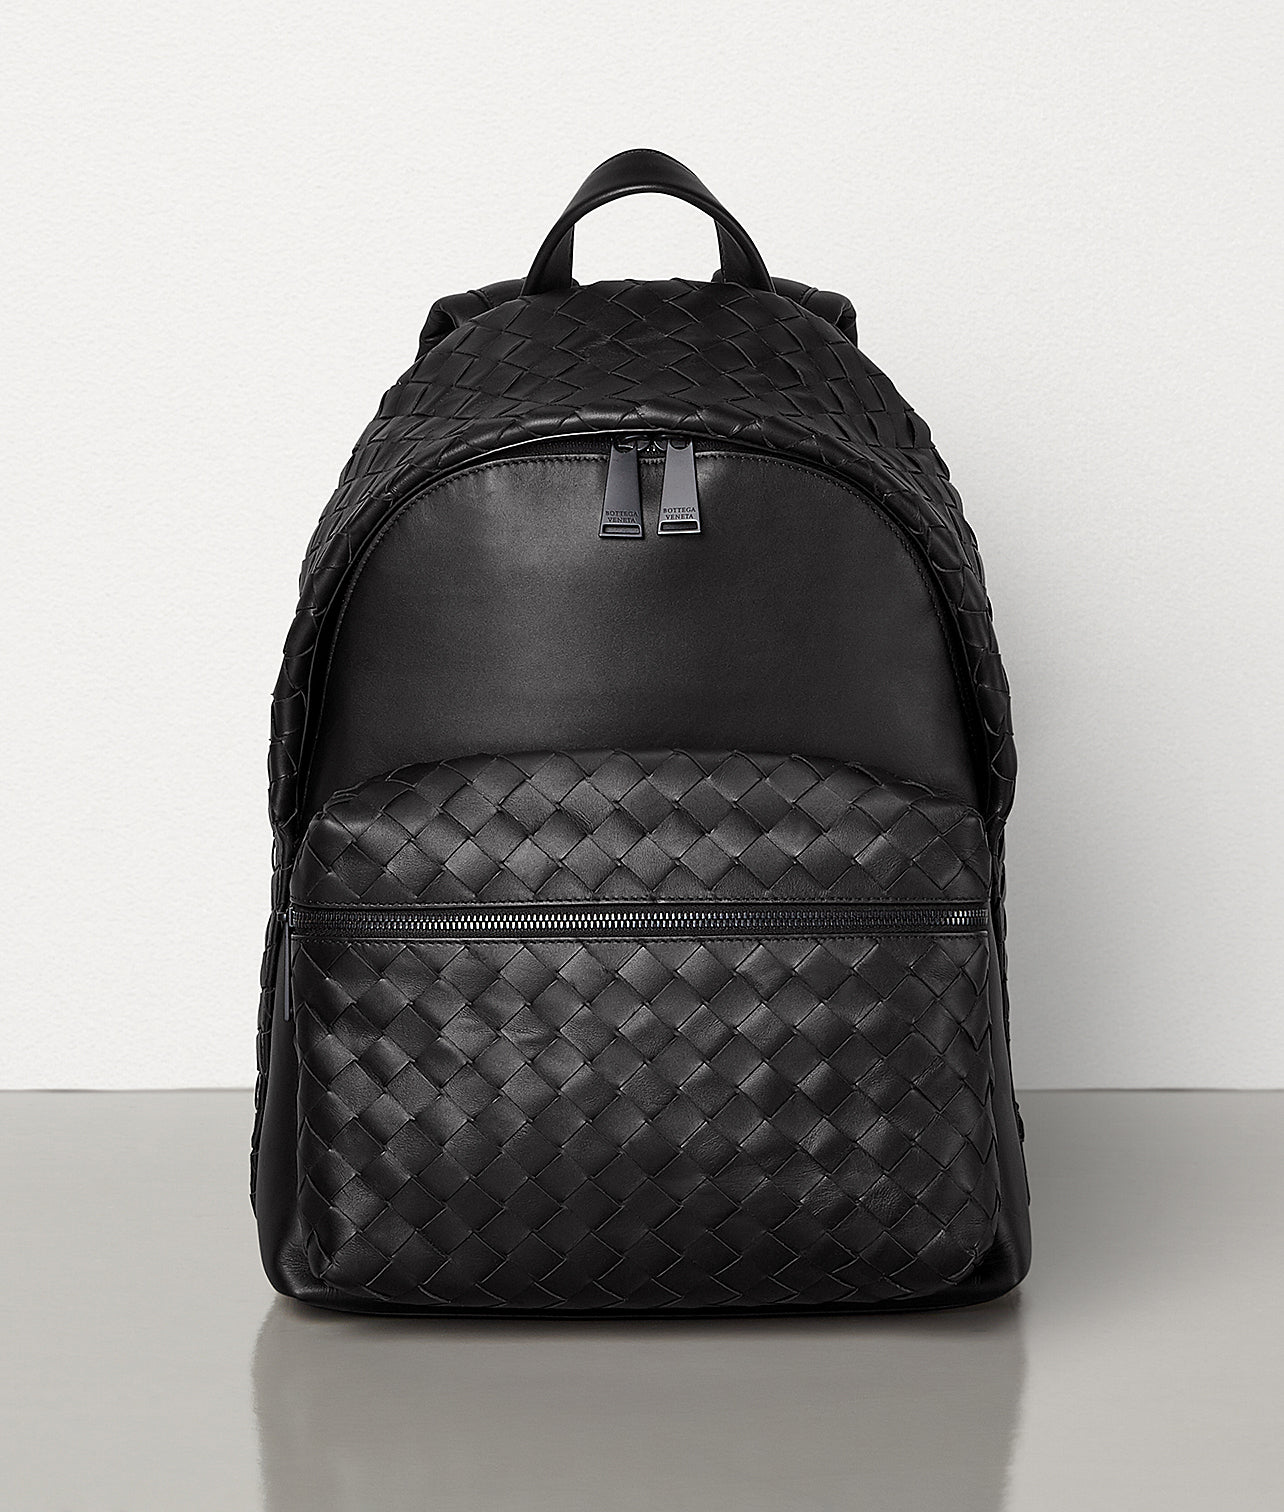 BOTTEGA VENETA Backpack in woven calfskin